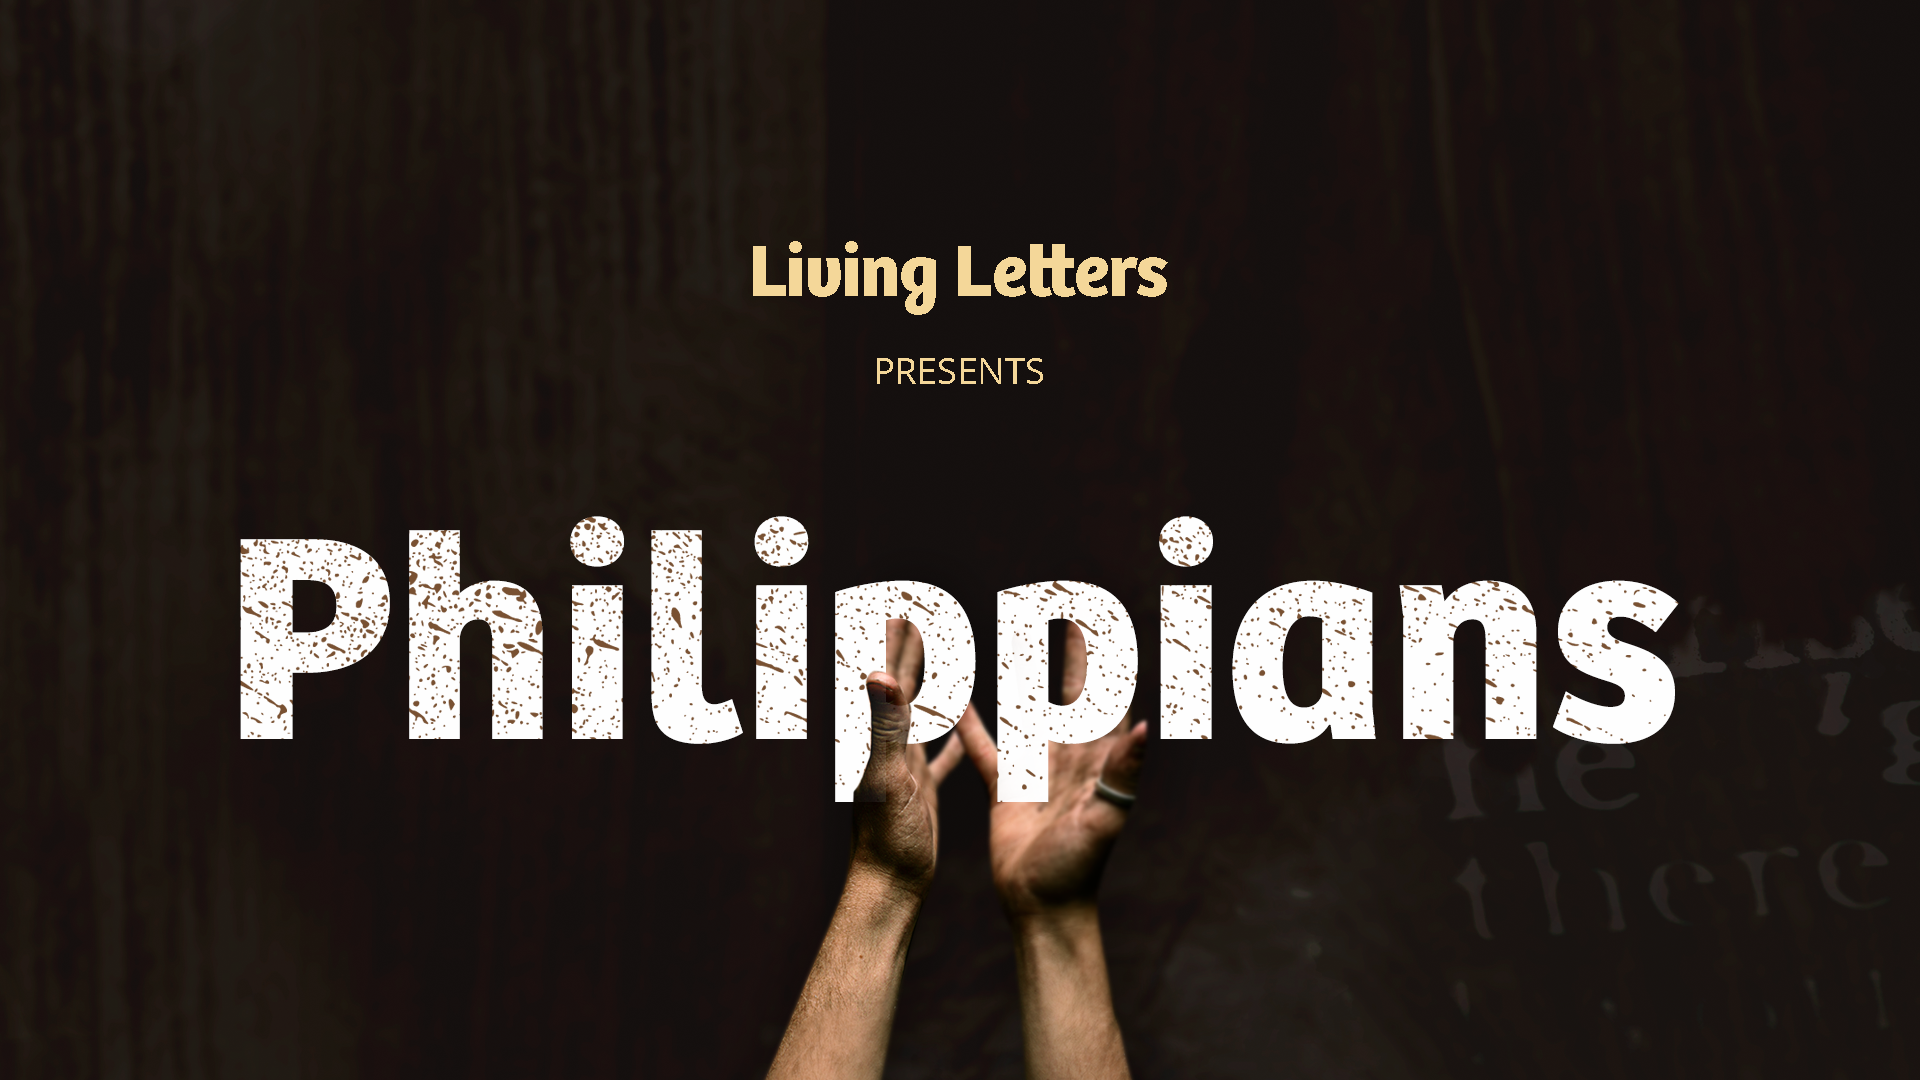 This is Lorem Ipsum about the book of Philippians. This is Lorem Ipsum about the book of Philippians. This is Lorem Ipsum about the book of Philippians. This is Lorem Ipsum about the book of Philippians.